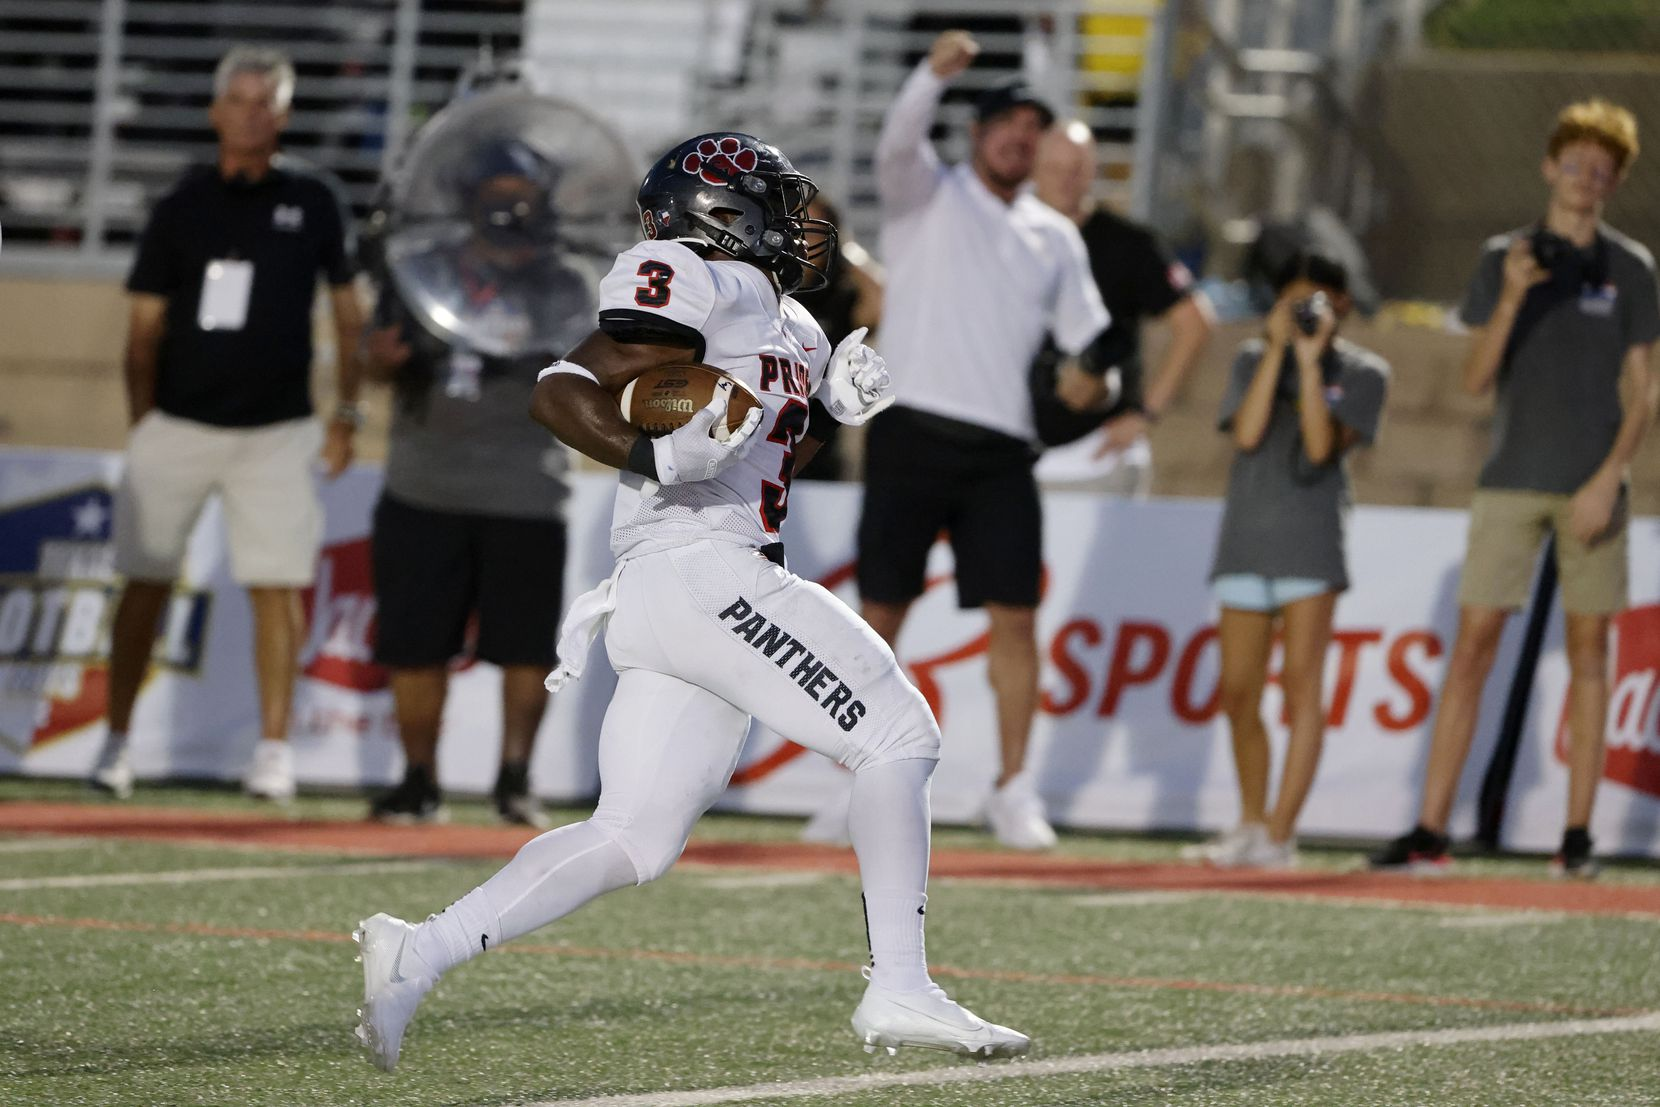 Colleyville Heritage running back Isaac Shabay (3) runs for a touchdown against Grapevine during the first half of their high school football game in Grapevine, Texas on Aug. 27, 2021. (Michael Ainsworth/Special Contributor)